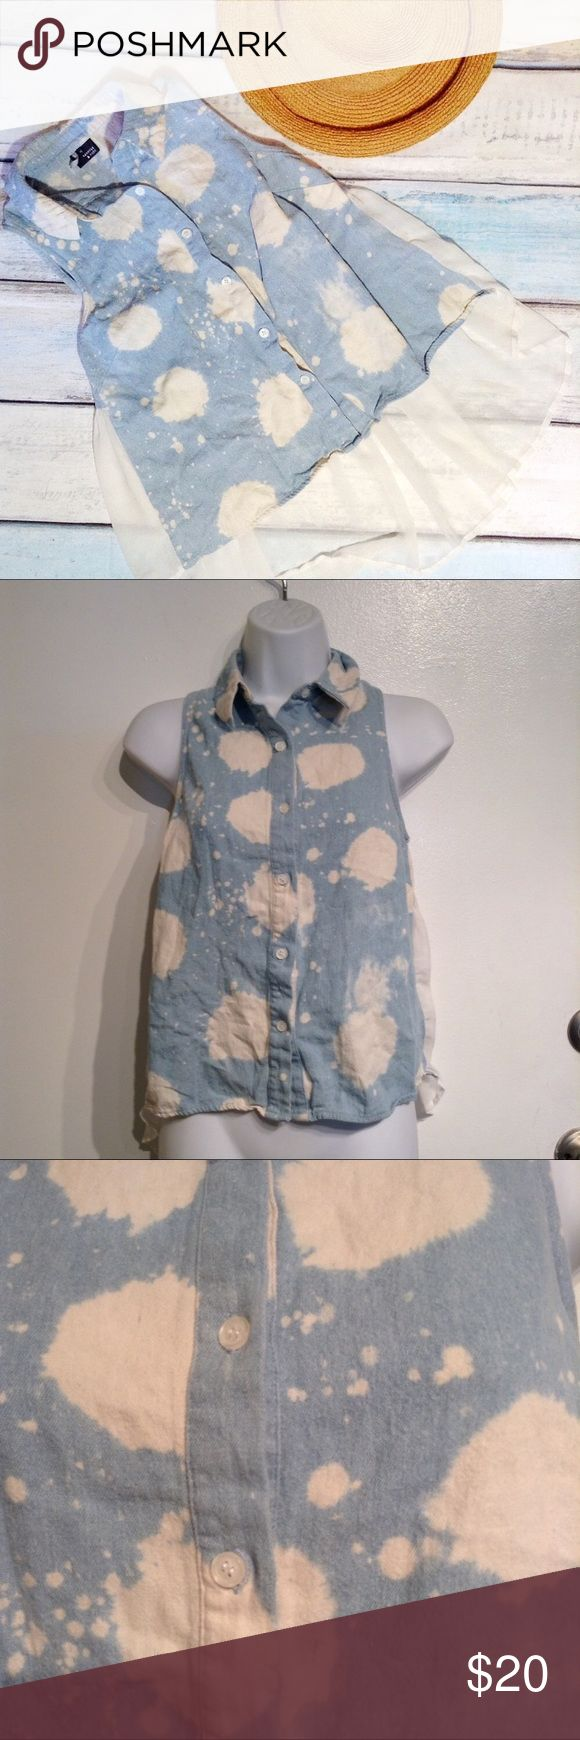 """URBAN OUTFITTERS Bleach Wash Denim & Tulle Top Sparkle & Fade from Urban Outfitters. Bleach washed denim chambray button up front with Flowy chiffon back. Has two small pin marks shown in 3rd photo. Collared. Size XS. Measures 15.5"""" flat from armpit to armpit. No modeling. Smoke free home. I do discount bundles. Urban Outfitters Tops"""